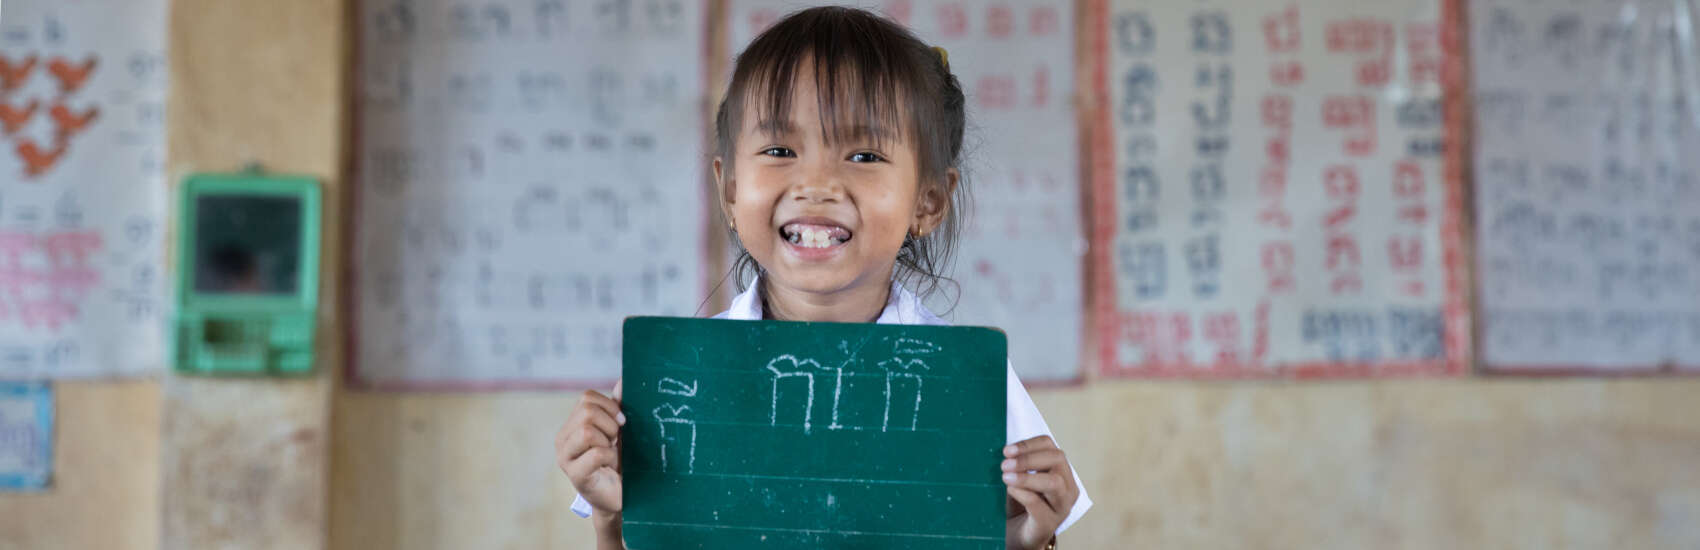 Little Monyrath, age 7, one of our First Read program students, stands at the front of her classroom, proudly holding a mini chalkboard displaying her work.